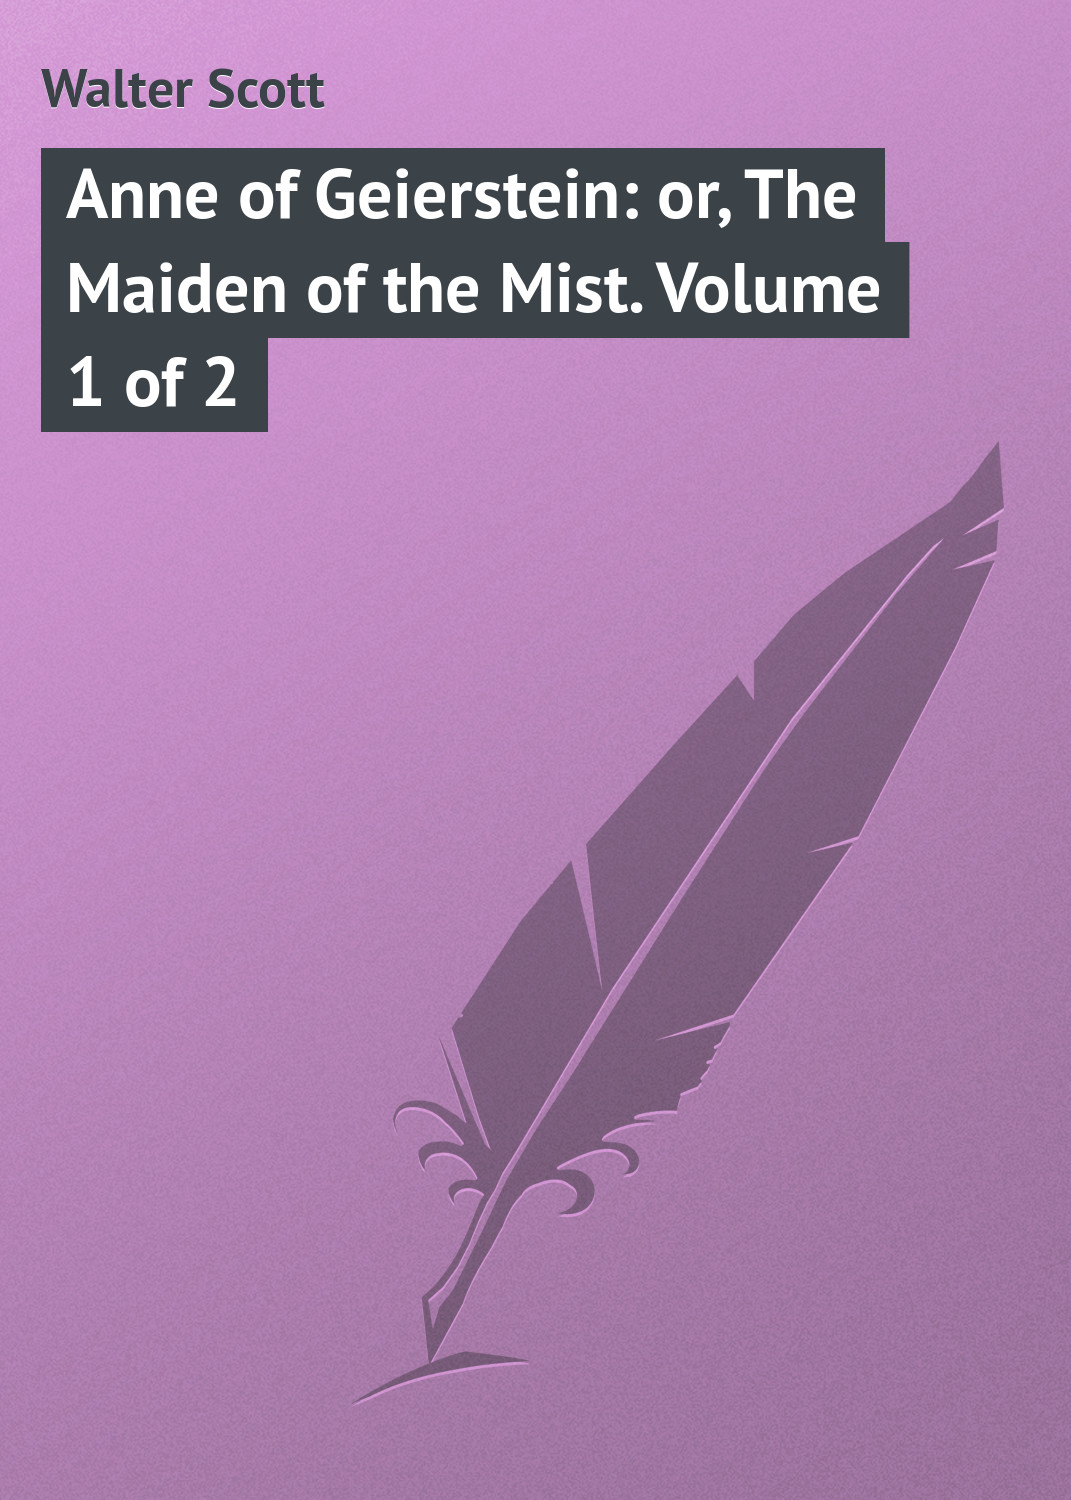 Walter Scott Anne of Geierstein: or, The Maiden of the Mist. Volume 1 of 2 walter scott the bride of lammermoor